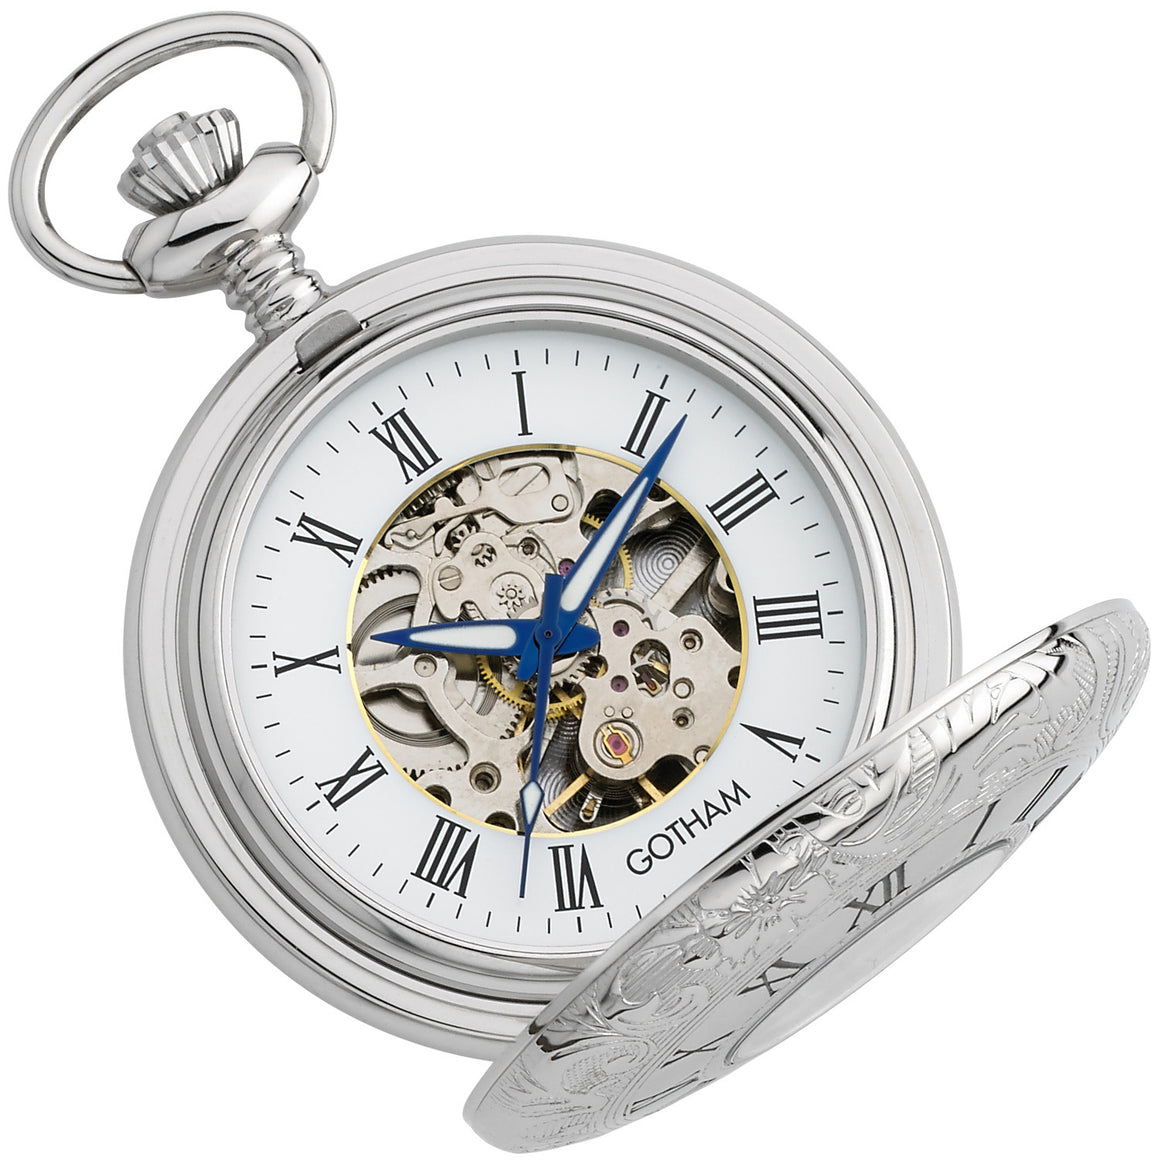 Gotham Men's Silver-Tone 17 Jewel Mechanical Exhibition Pocket Watch # GWC14040S